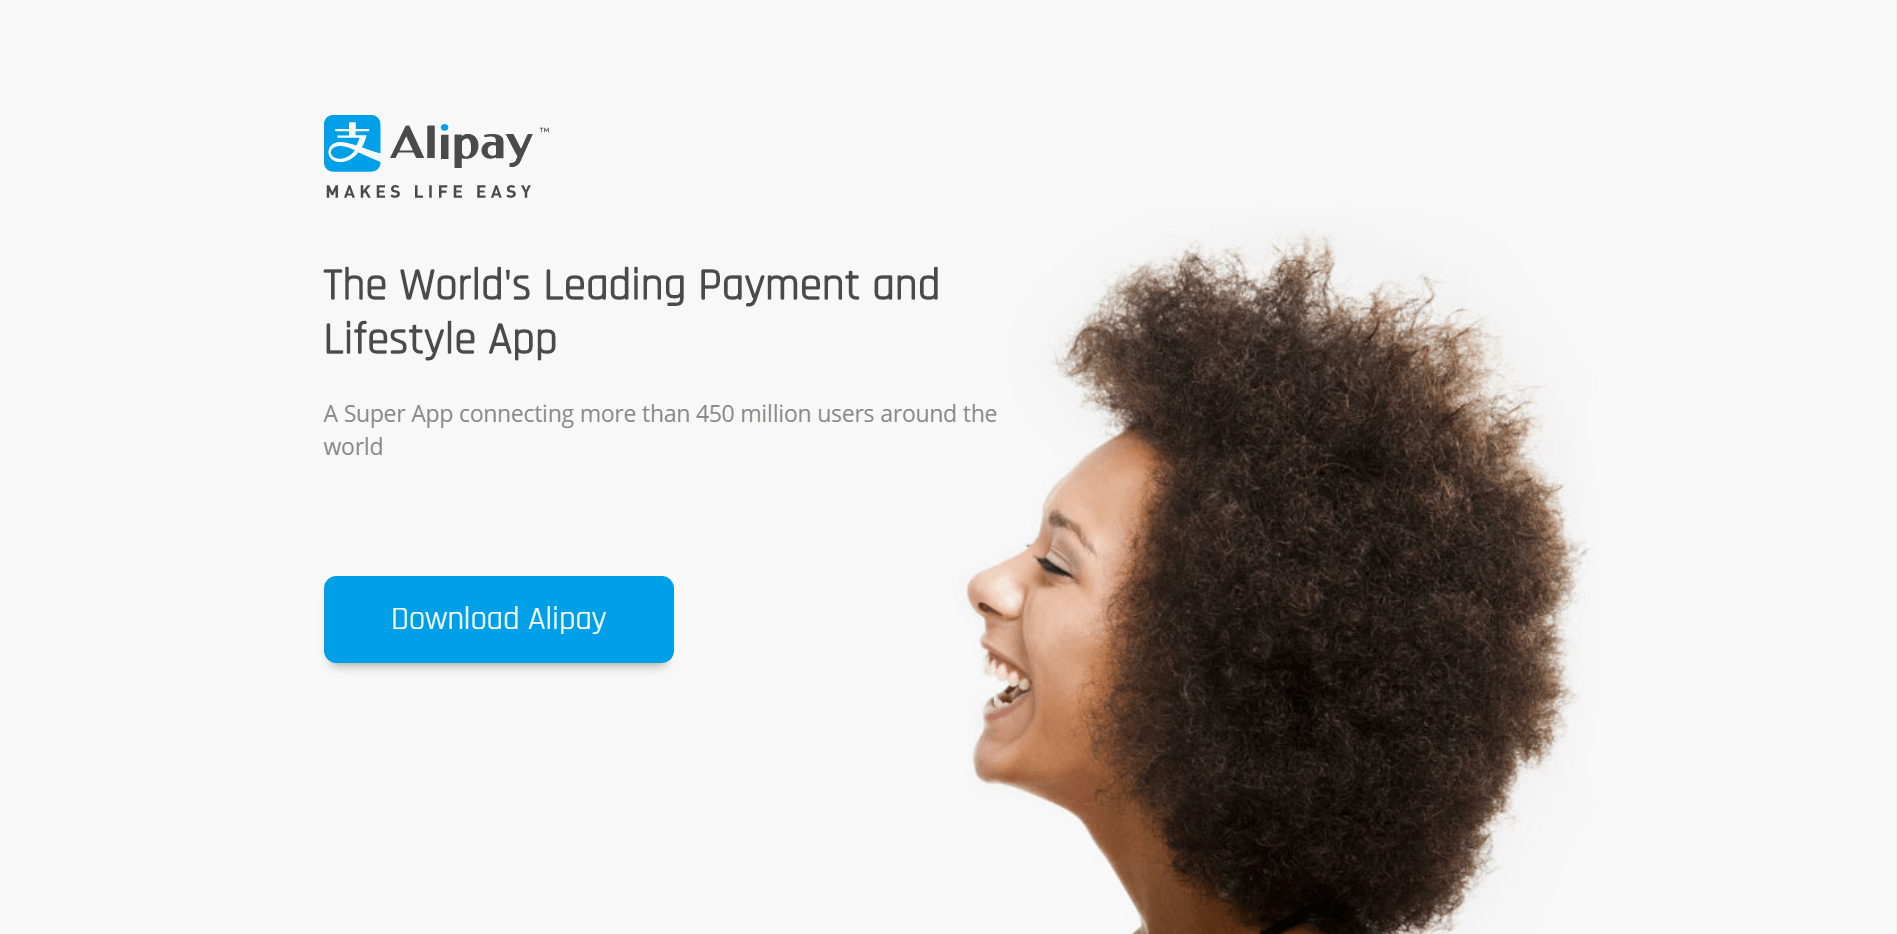 download Alipay